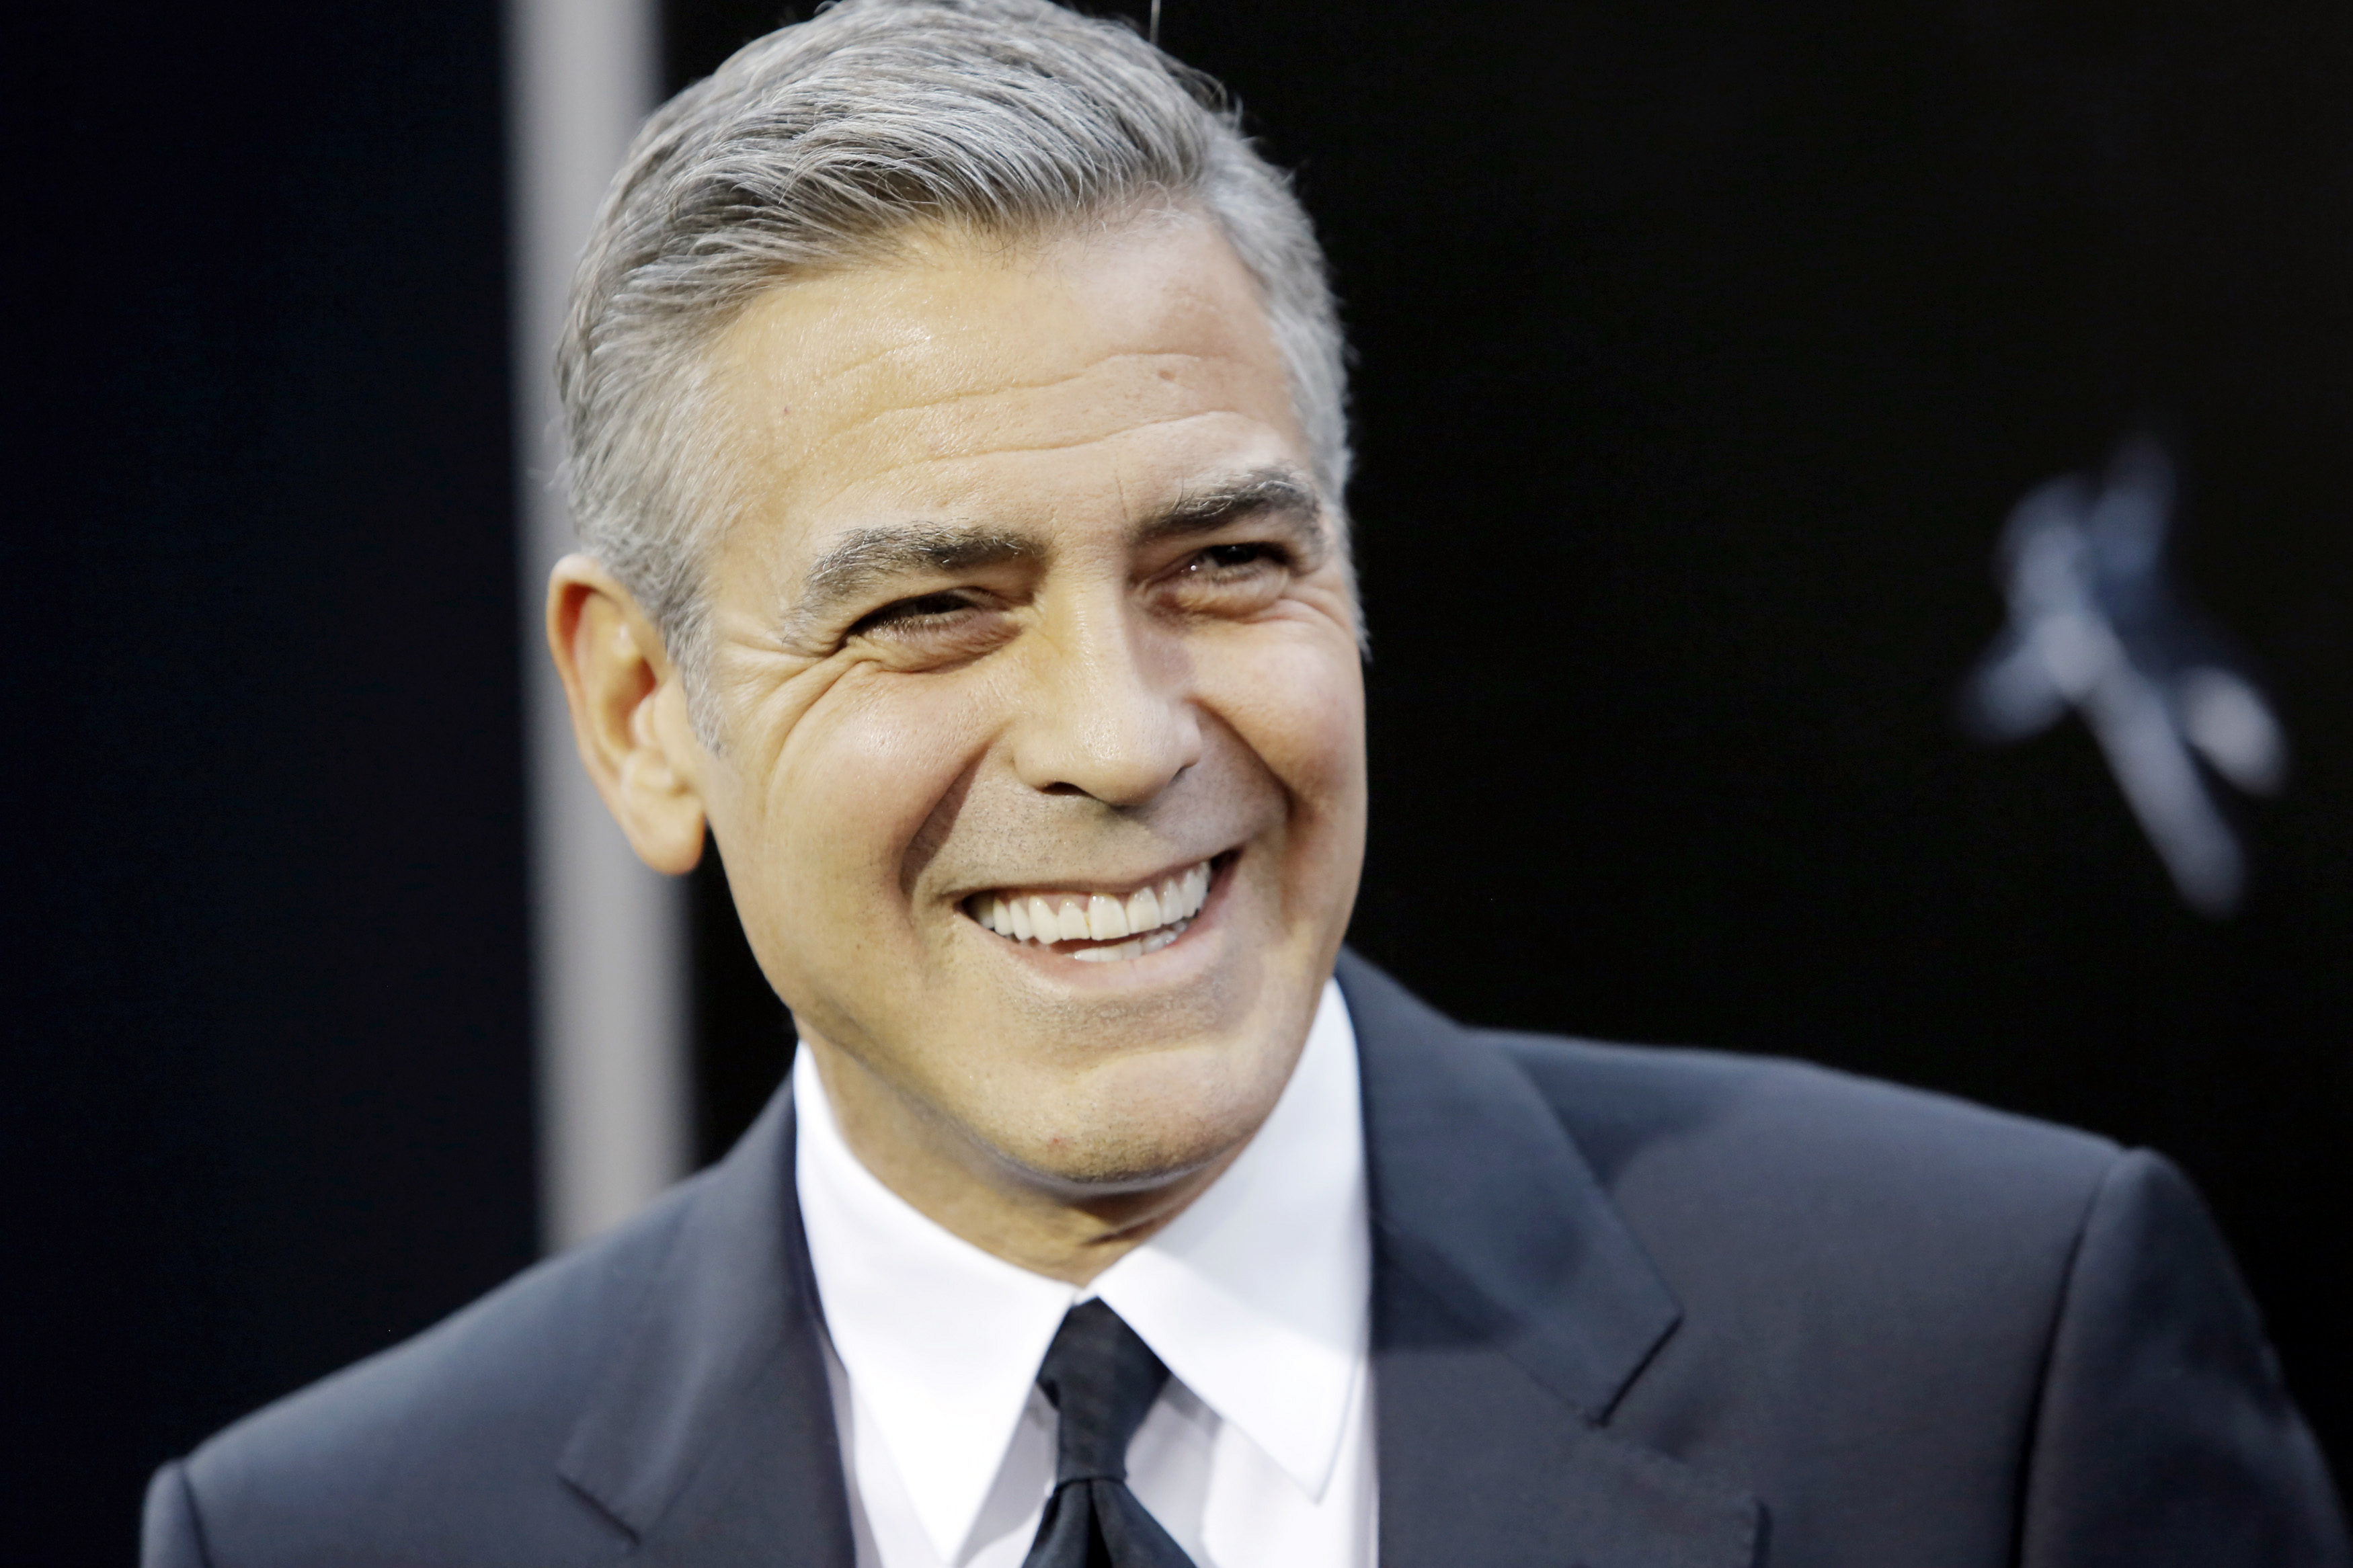 George Clooney Hd Background